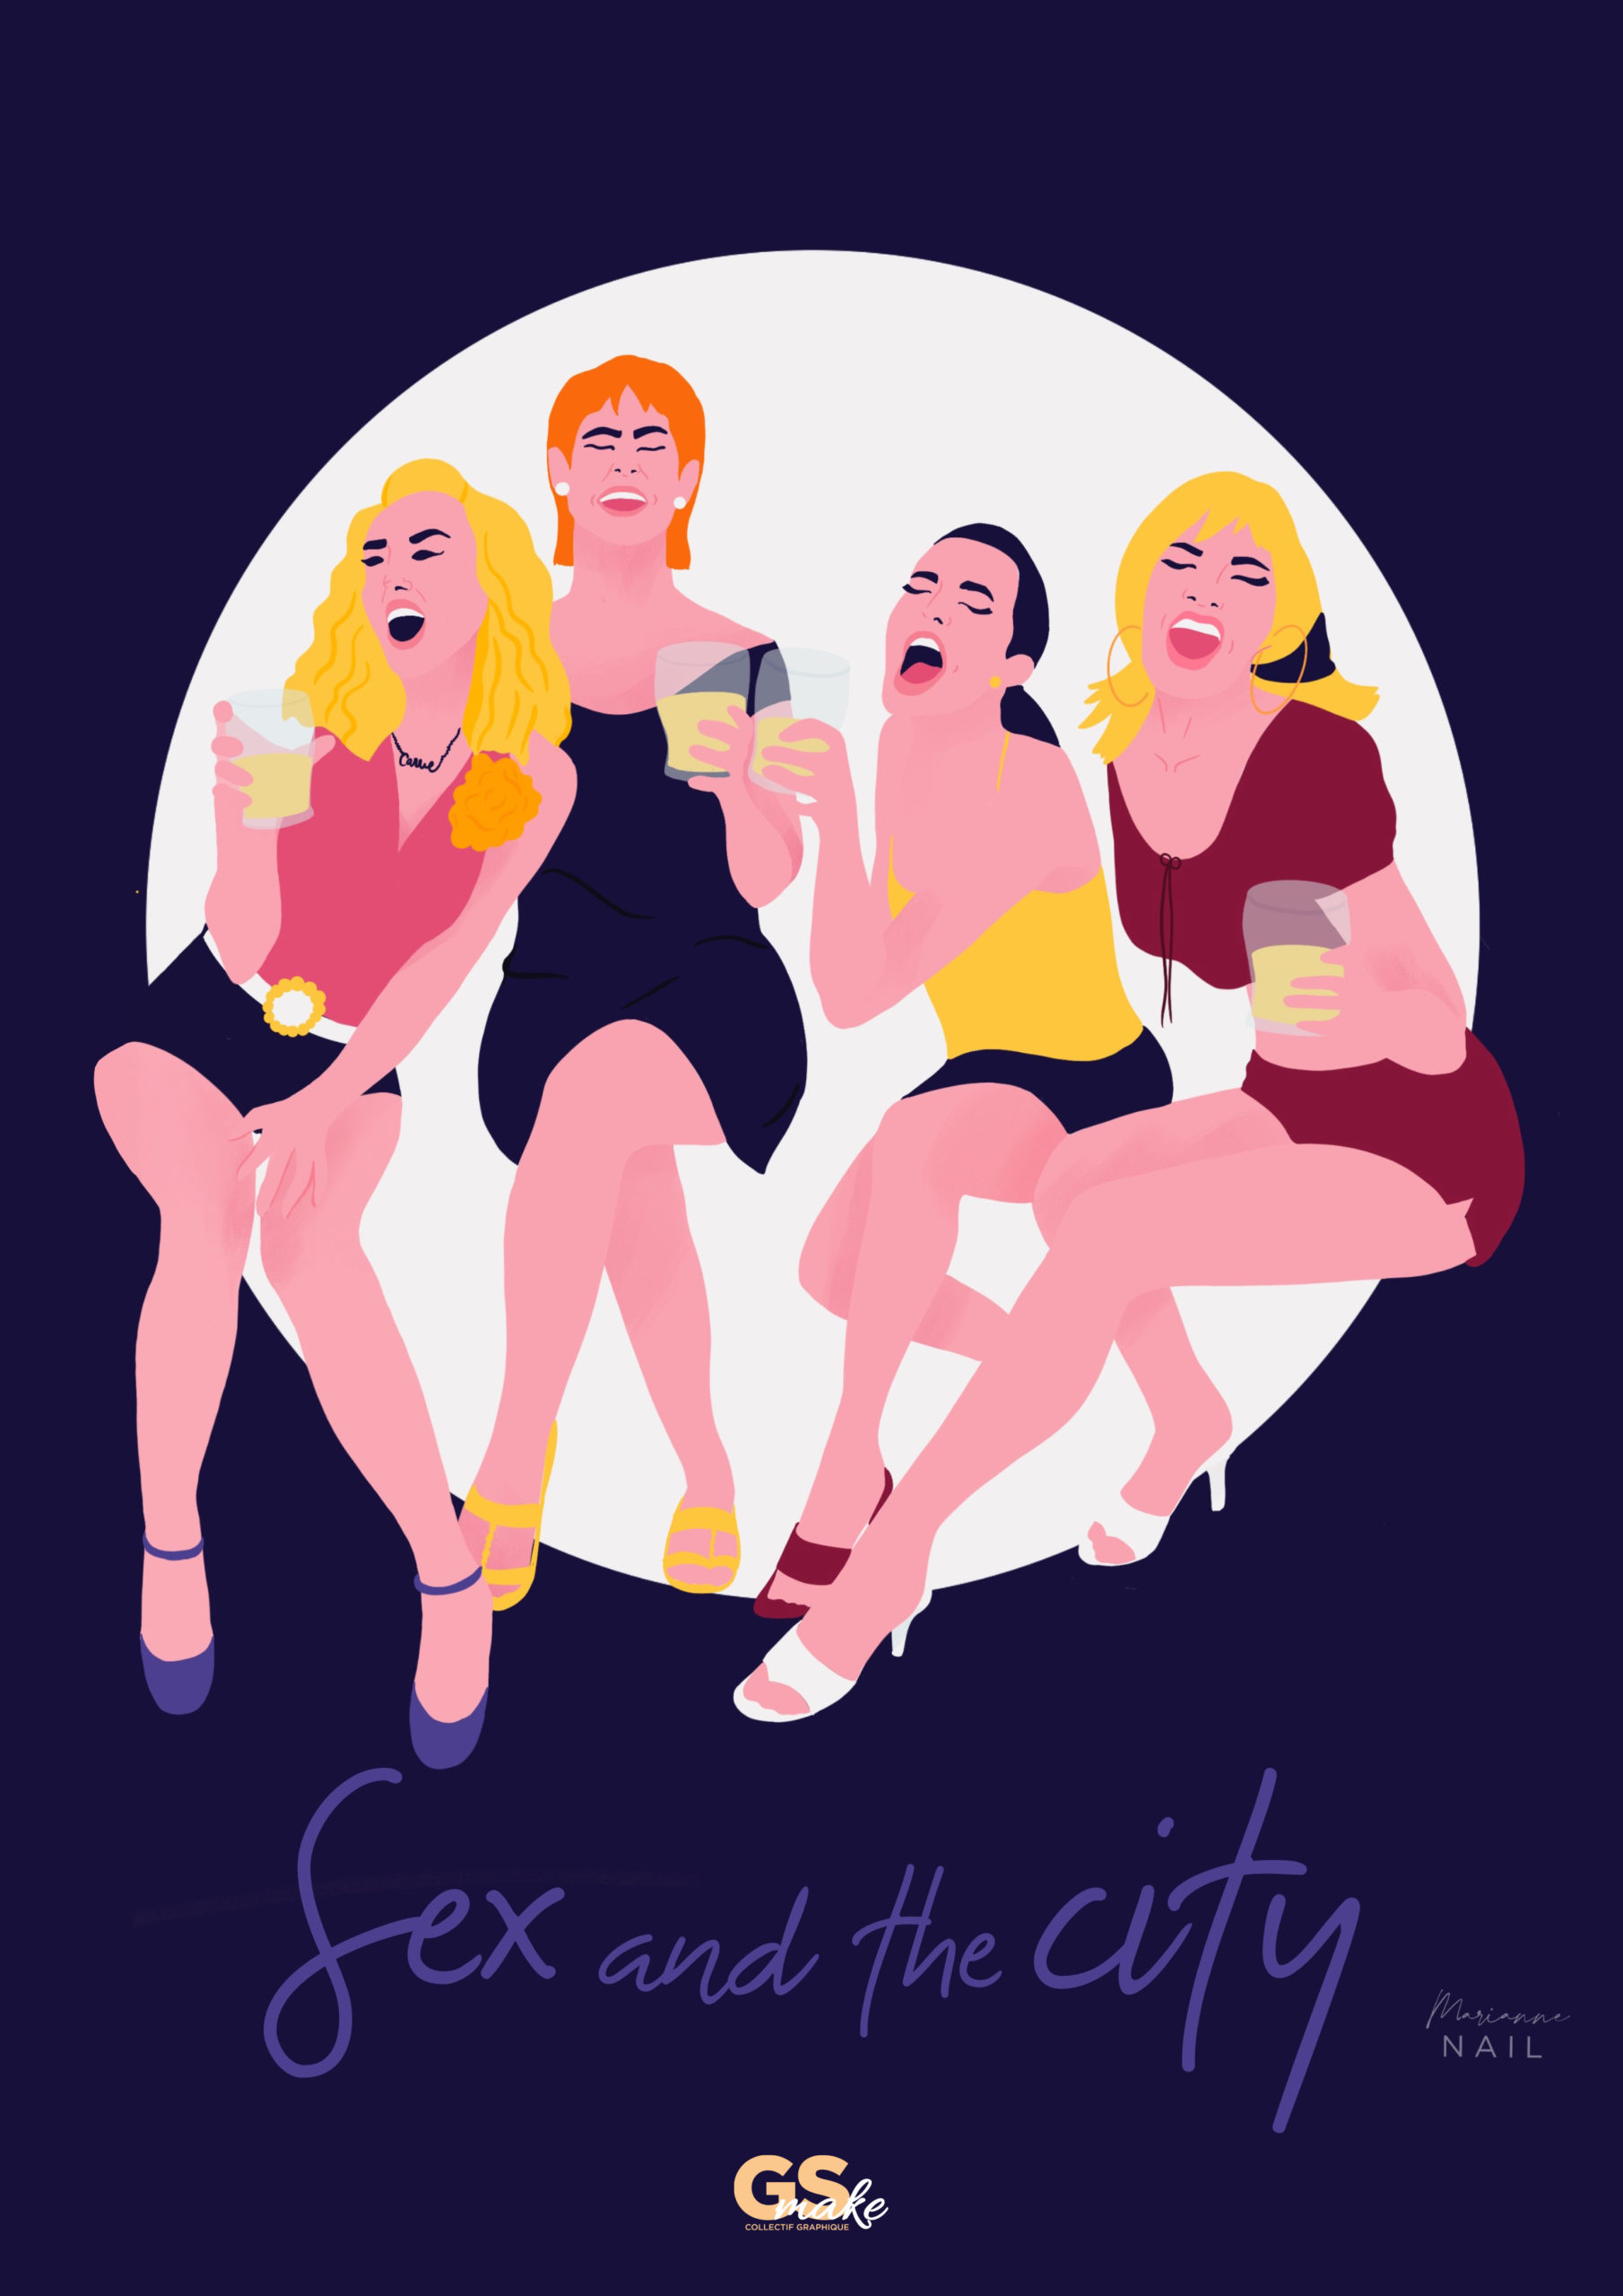 sex_and_the_city_illustrations